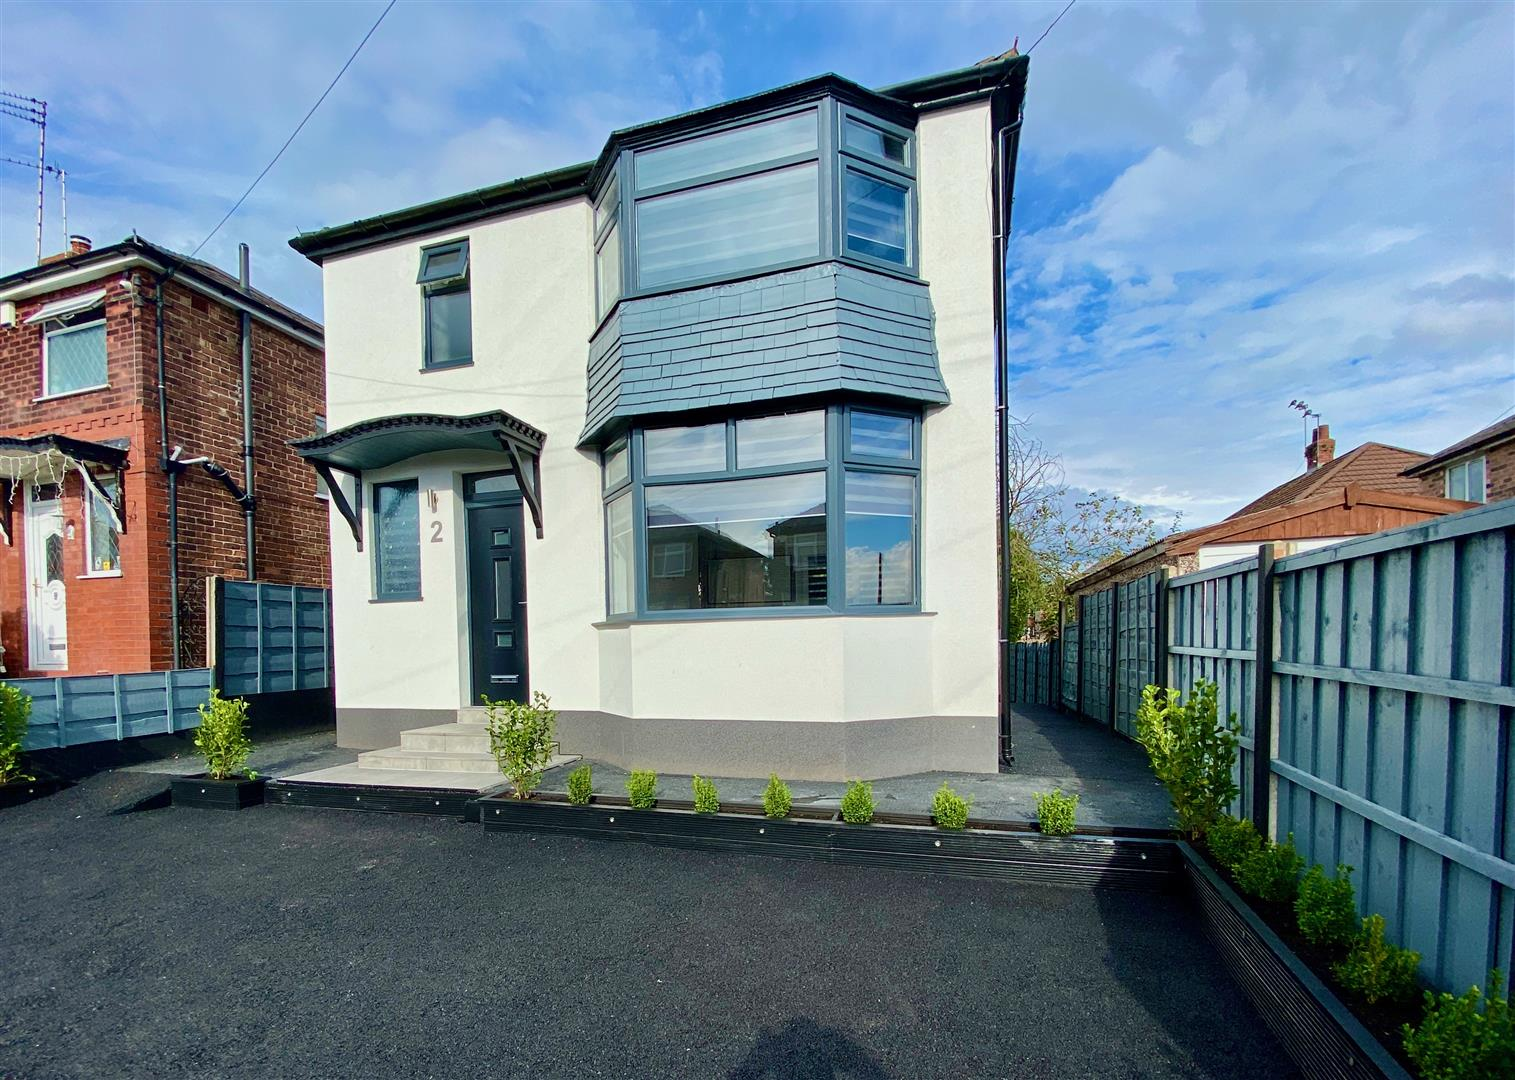 2 Willingdon Drive, Prestwich